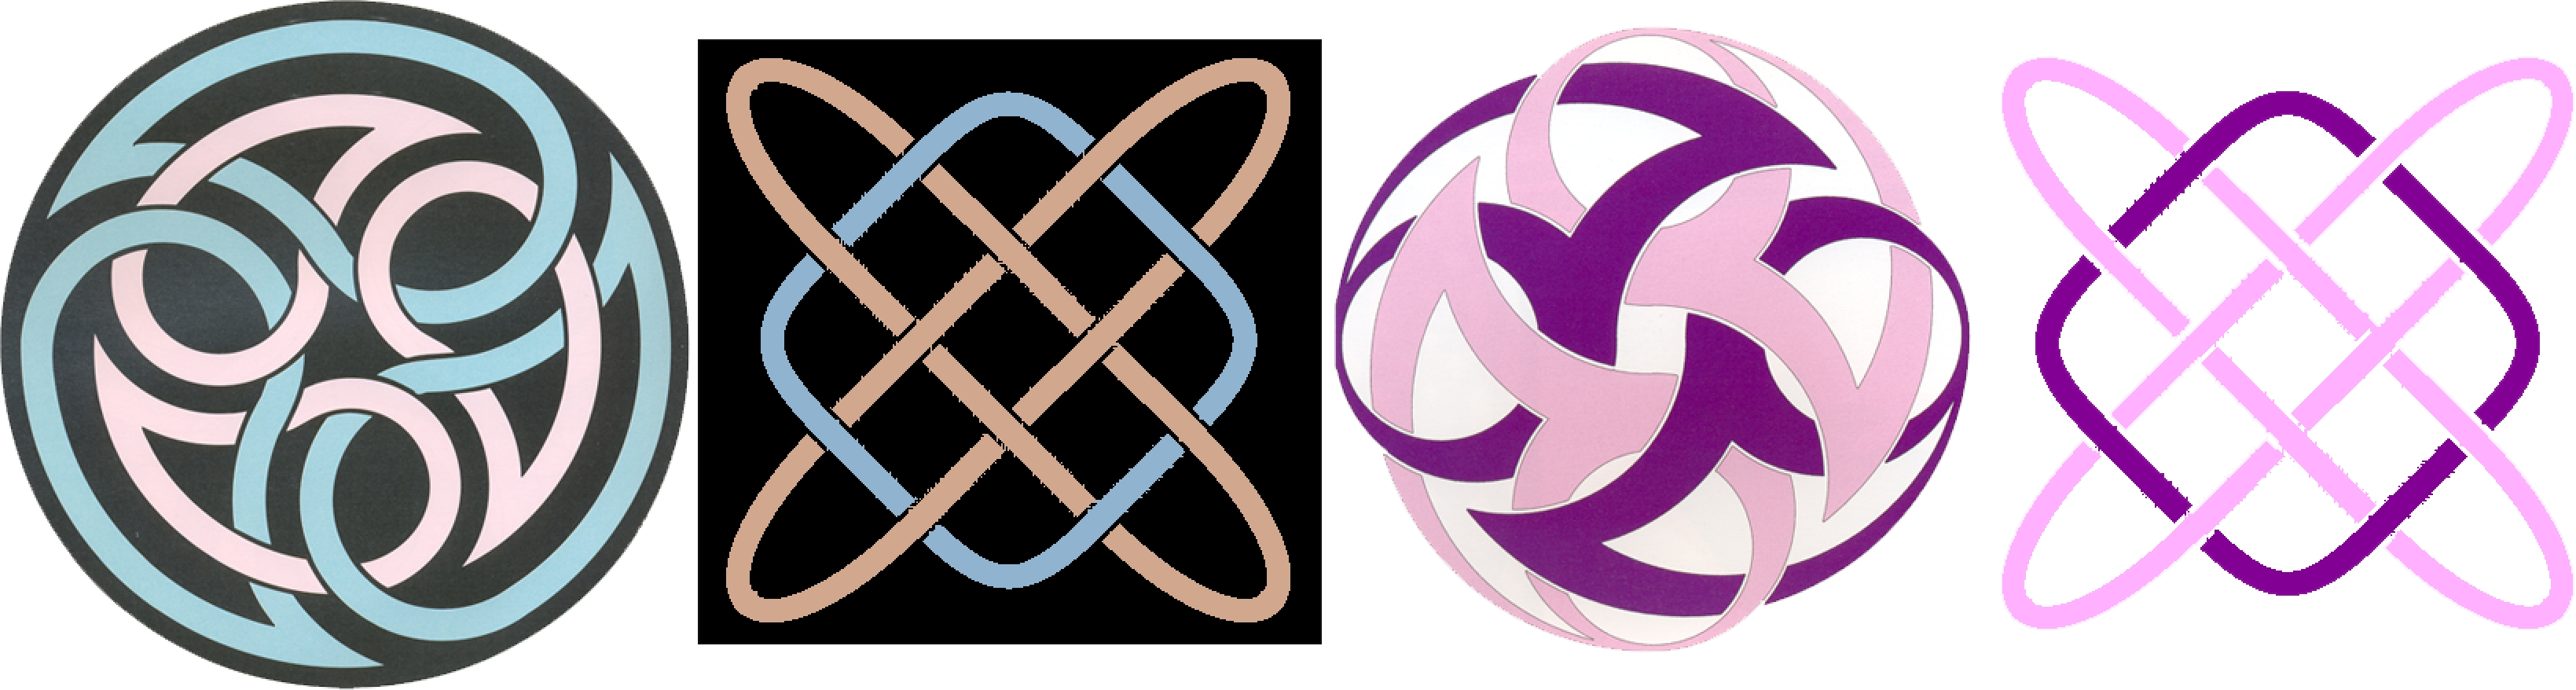 Principles Of Art Harmony : Celtic knots colorization based on color harmony principles